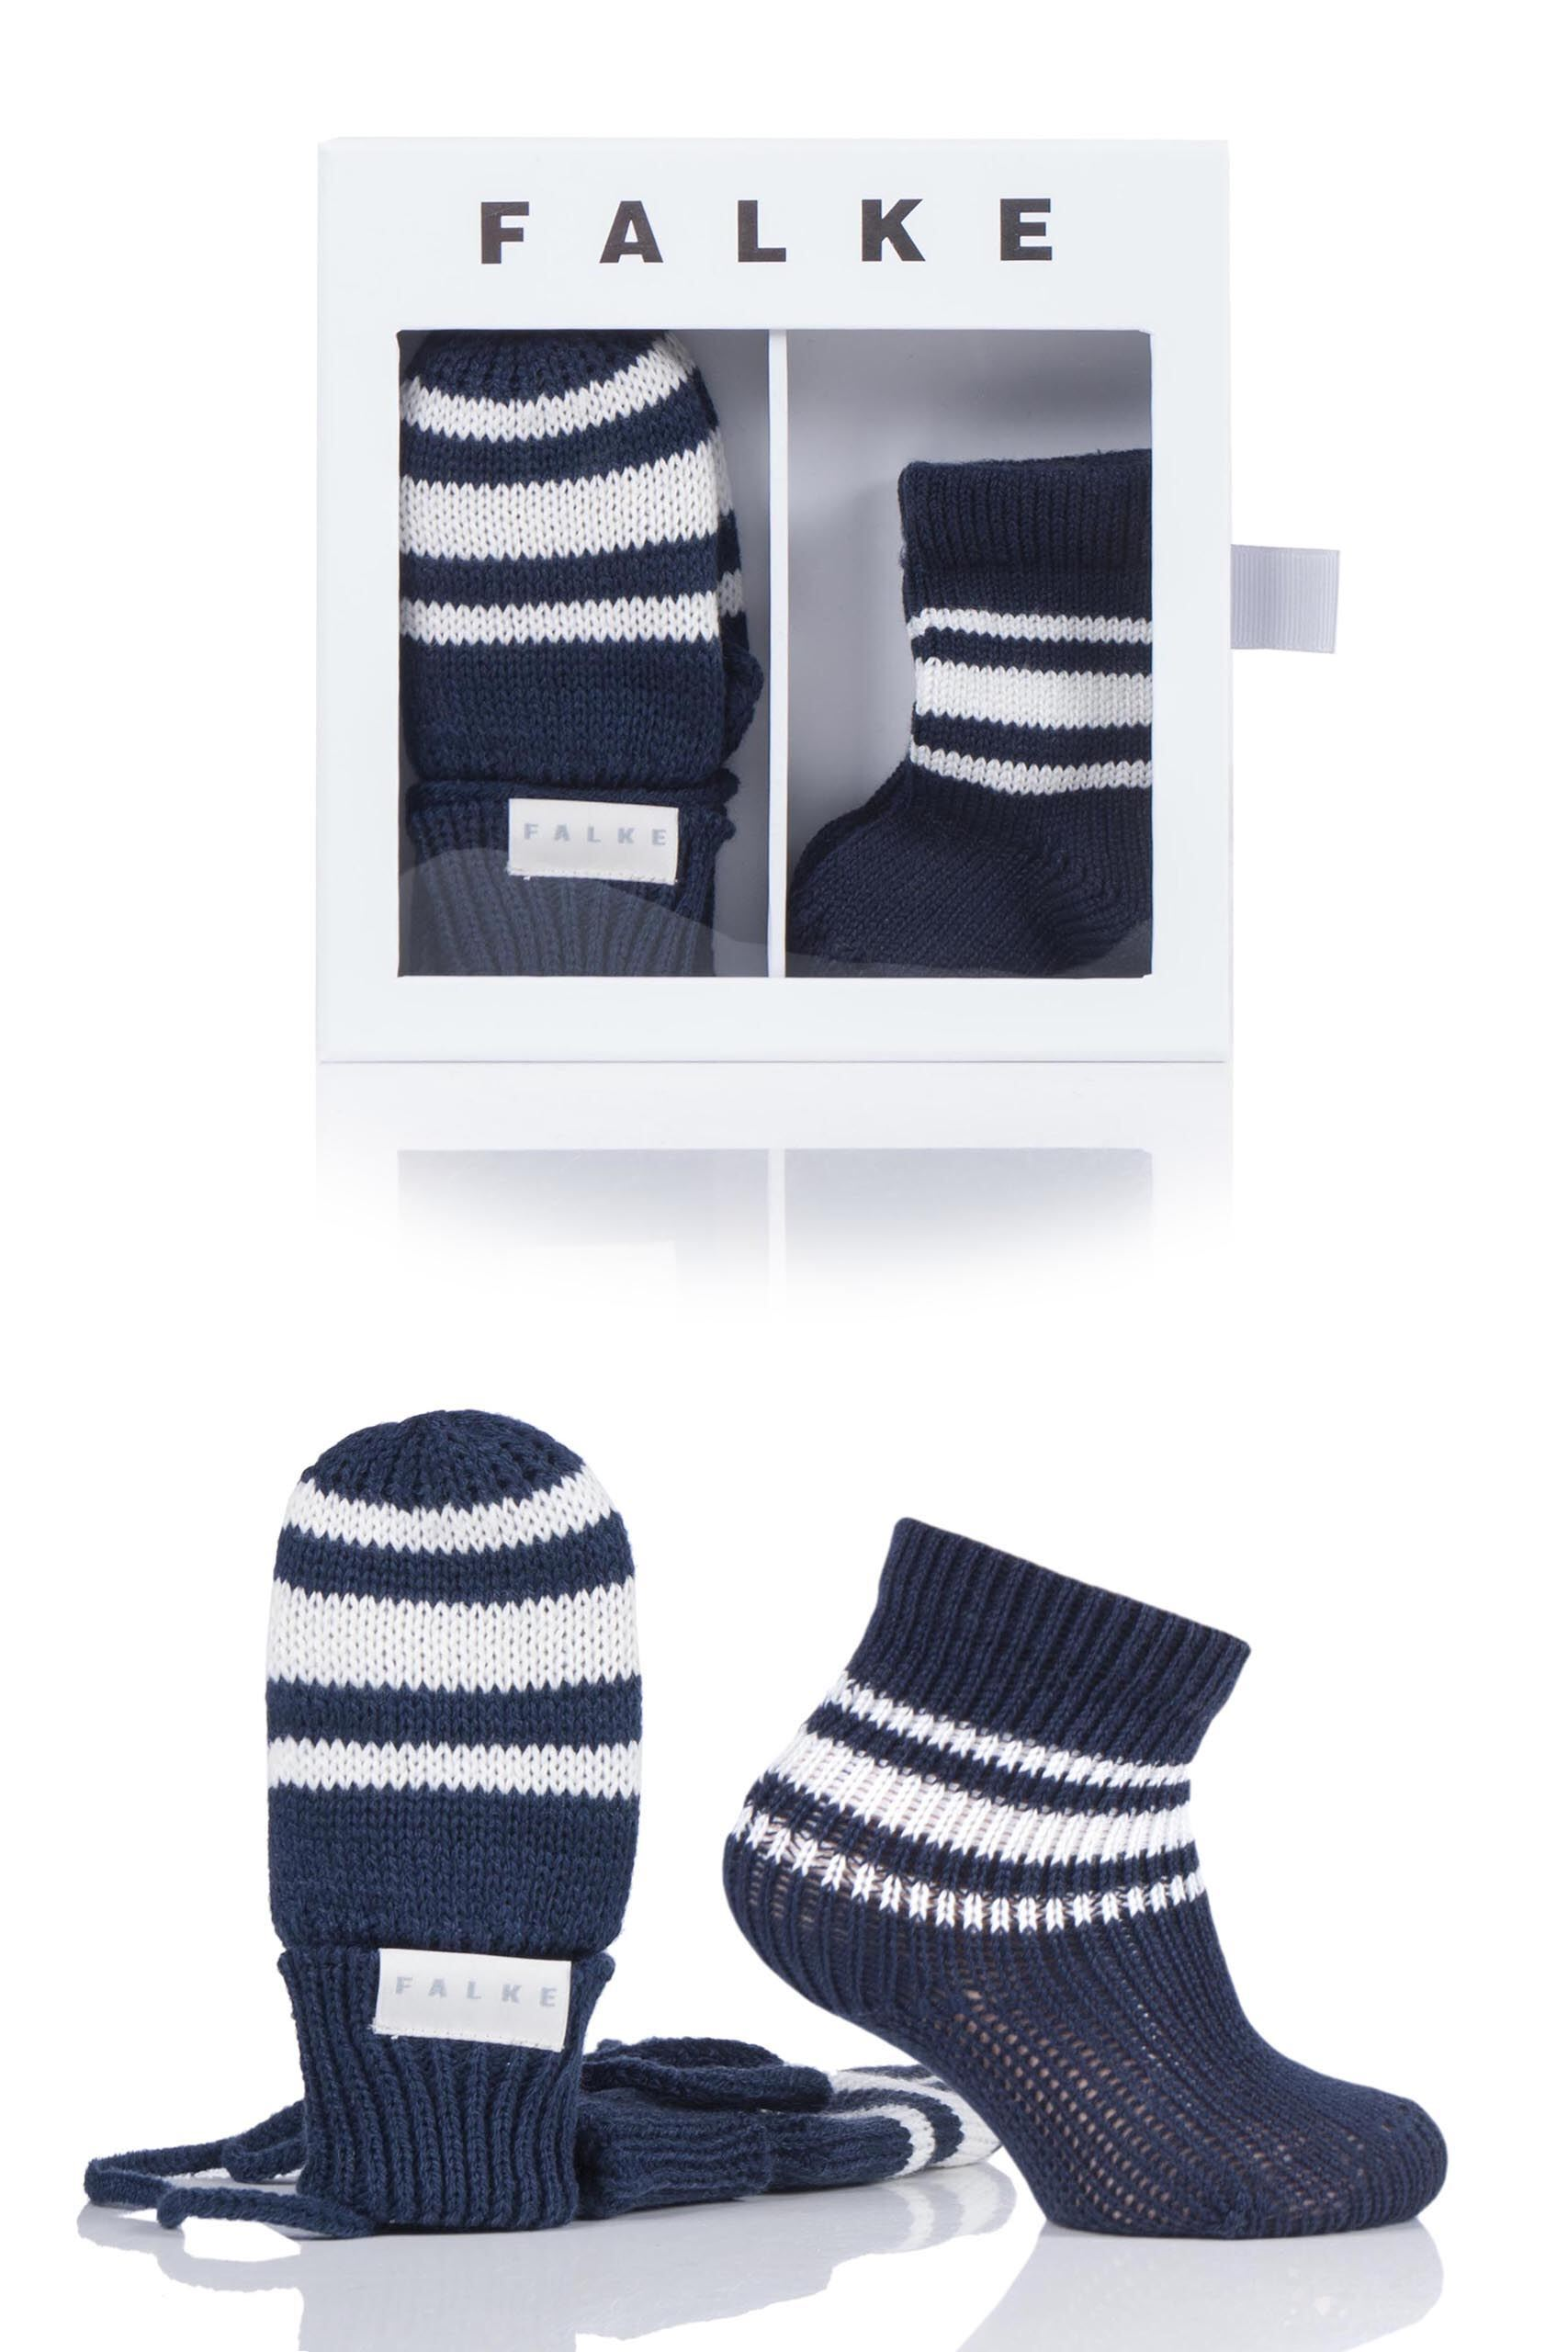 Image of 1 Pack Marine Babies Socks and Mittens Gift Box Kids Unisex 6-12 Months - Falke